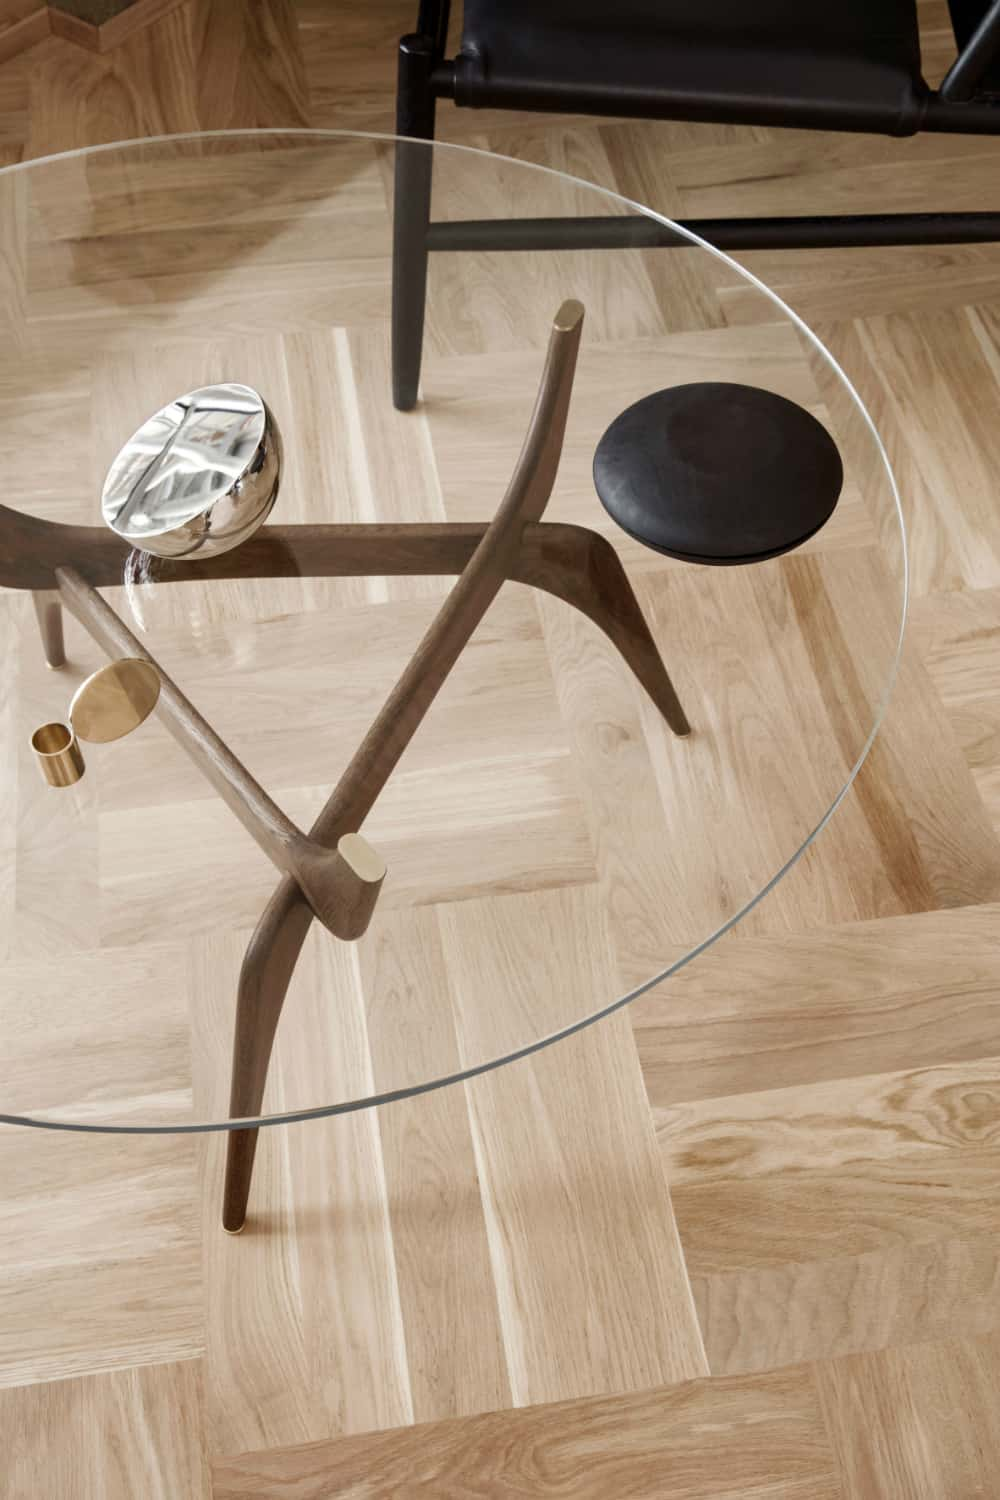 Tables come in both coffee and dining variations